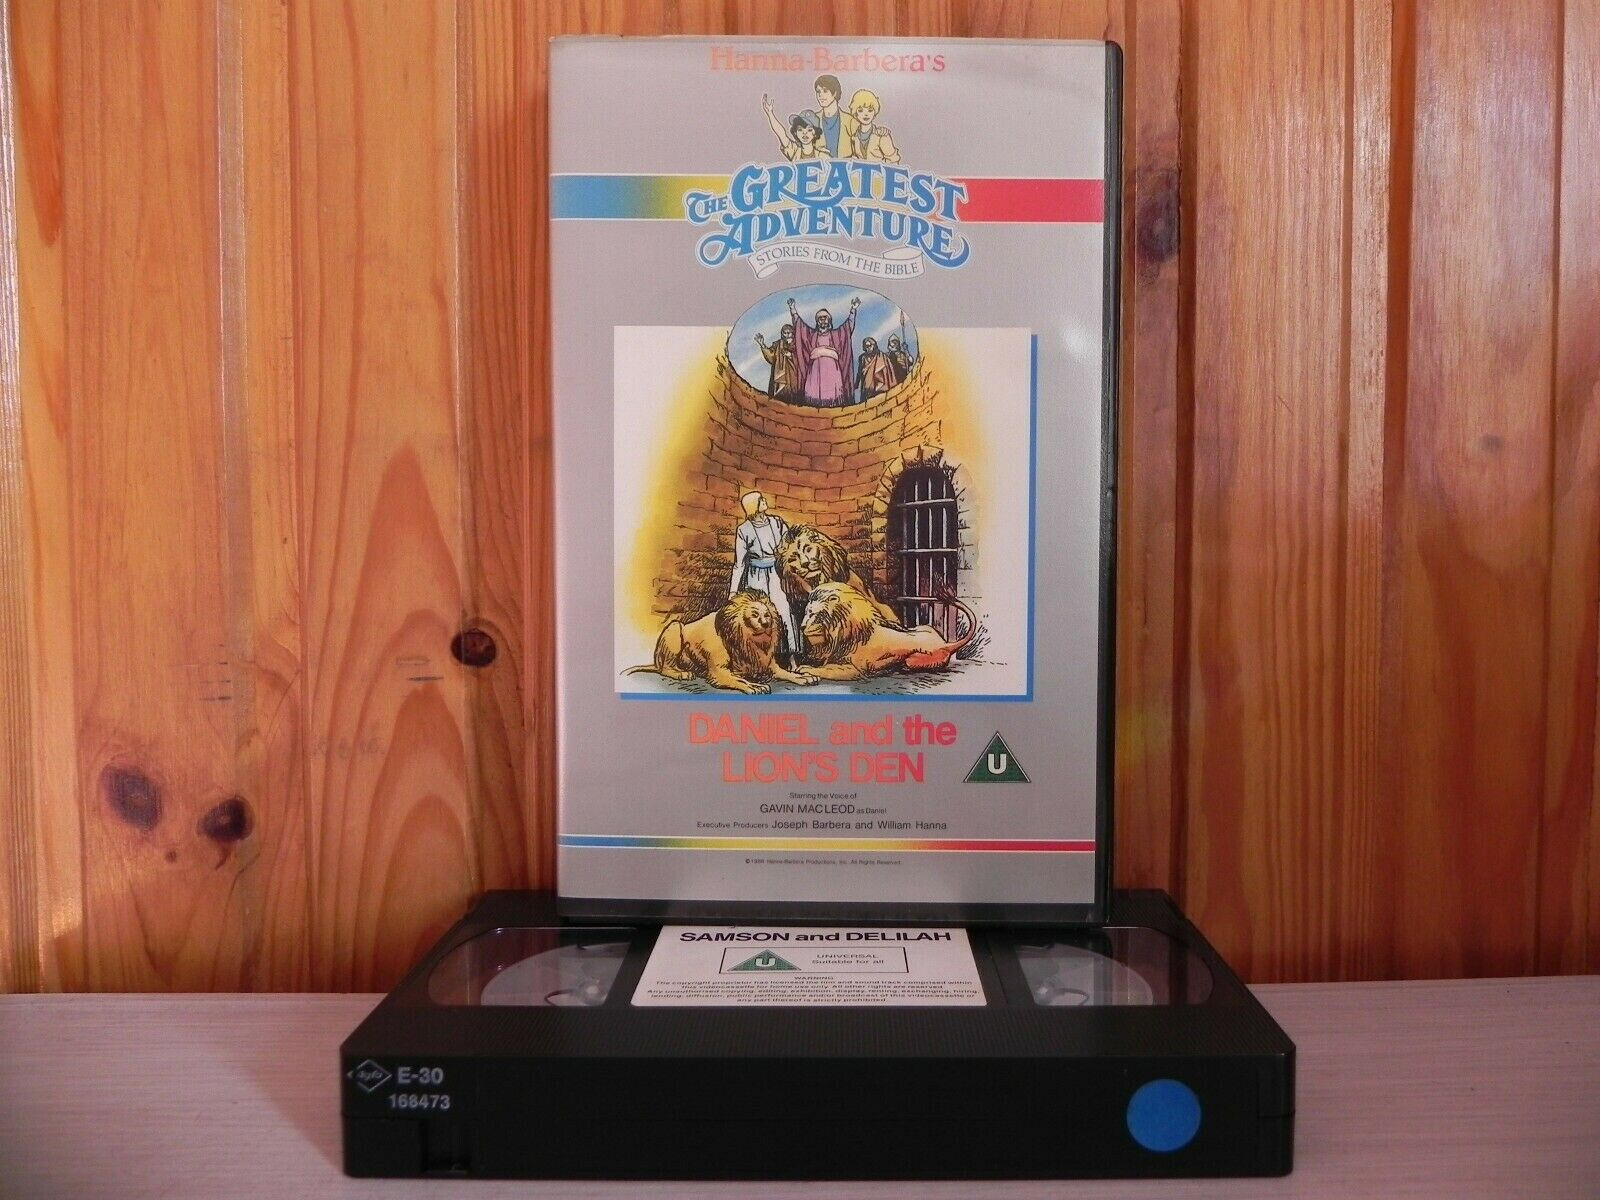 Barbera, Bible, Big, Box, Children's & Family, Christianity, Daniel, Den, From, Hanna, Lions, PAL, Stories, The, U, United Kingdom, VHS